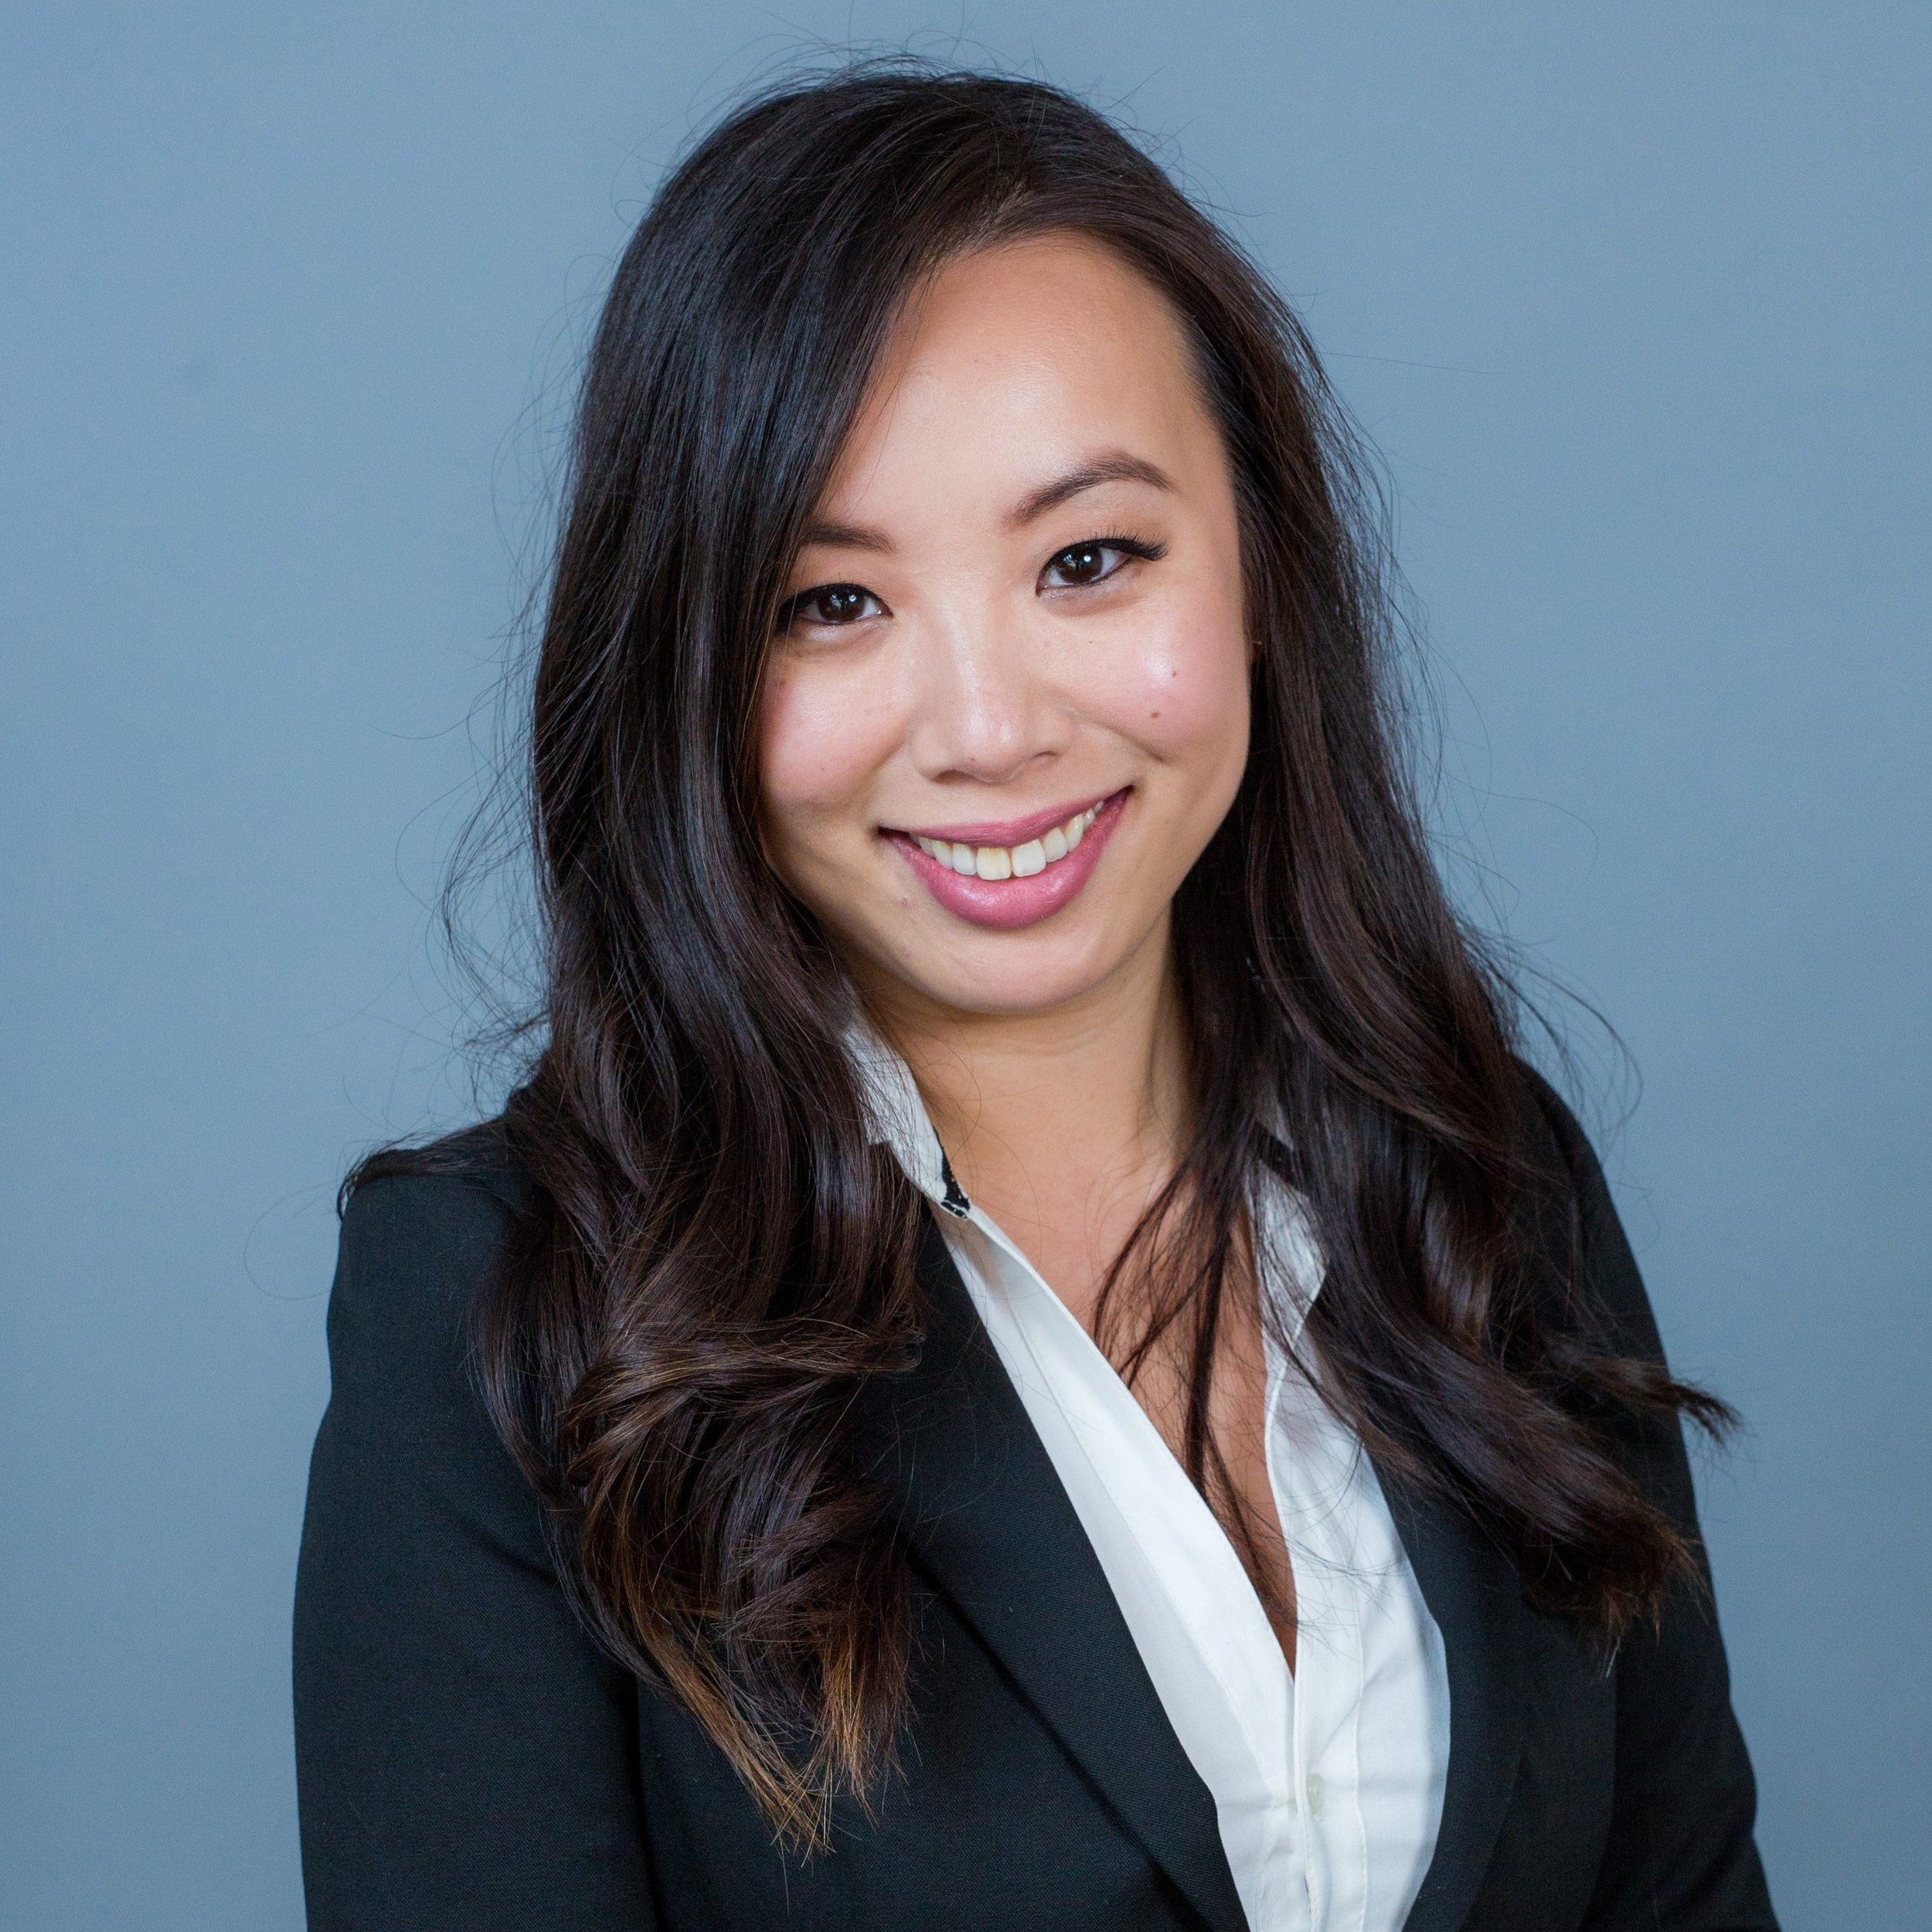 Lianna Louie - Manager of ERG's & Grants